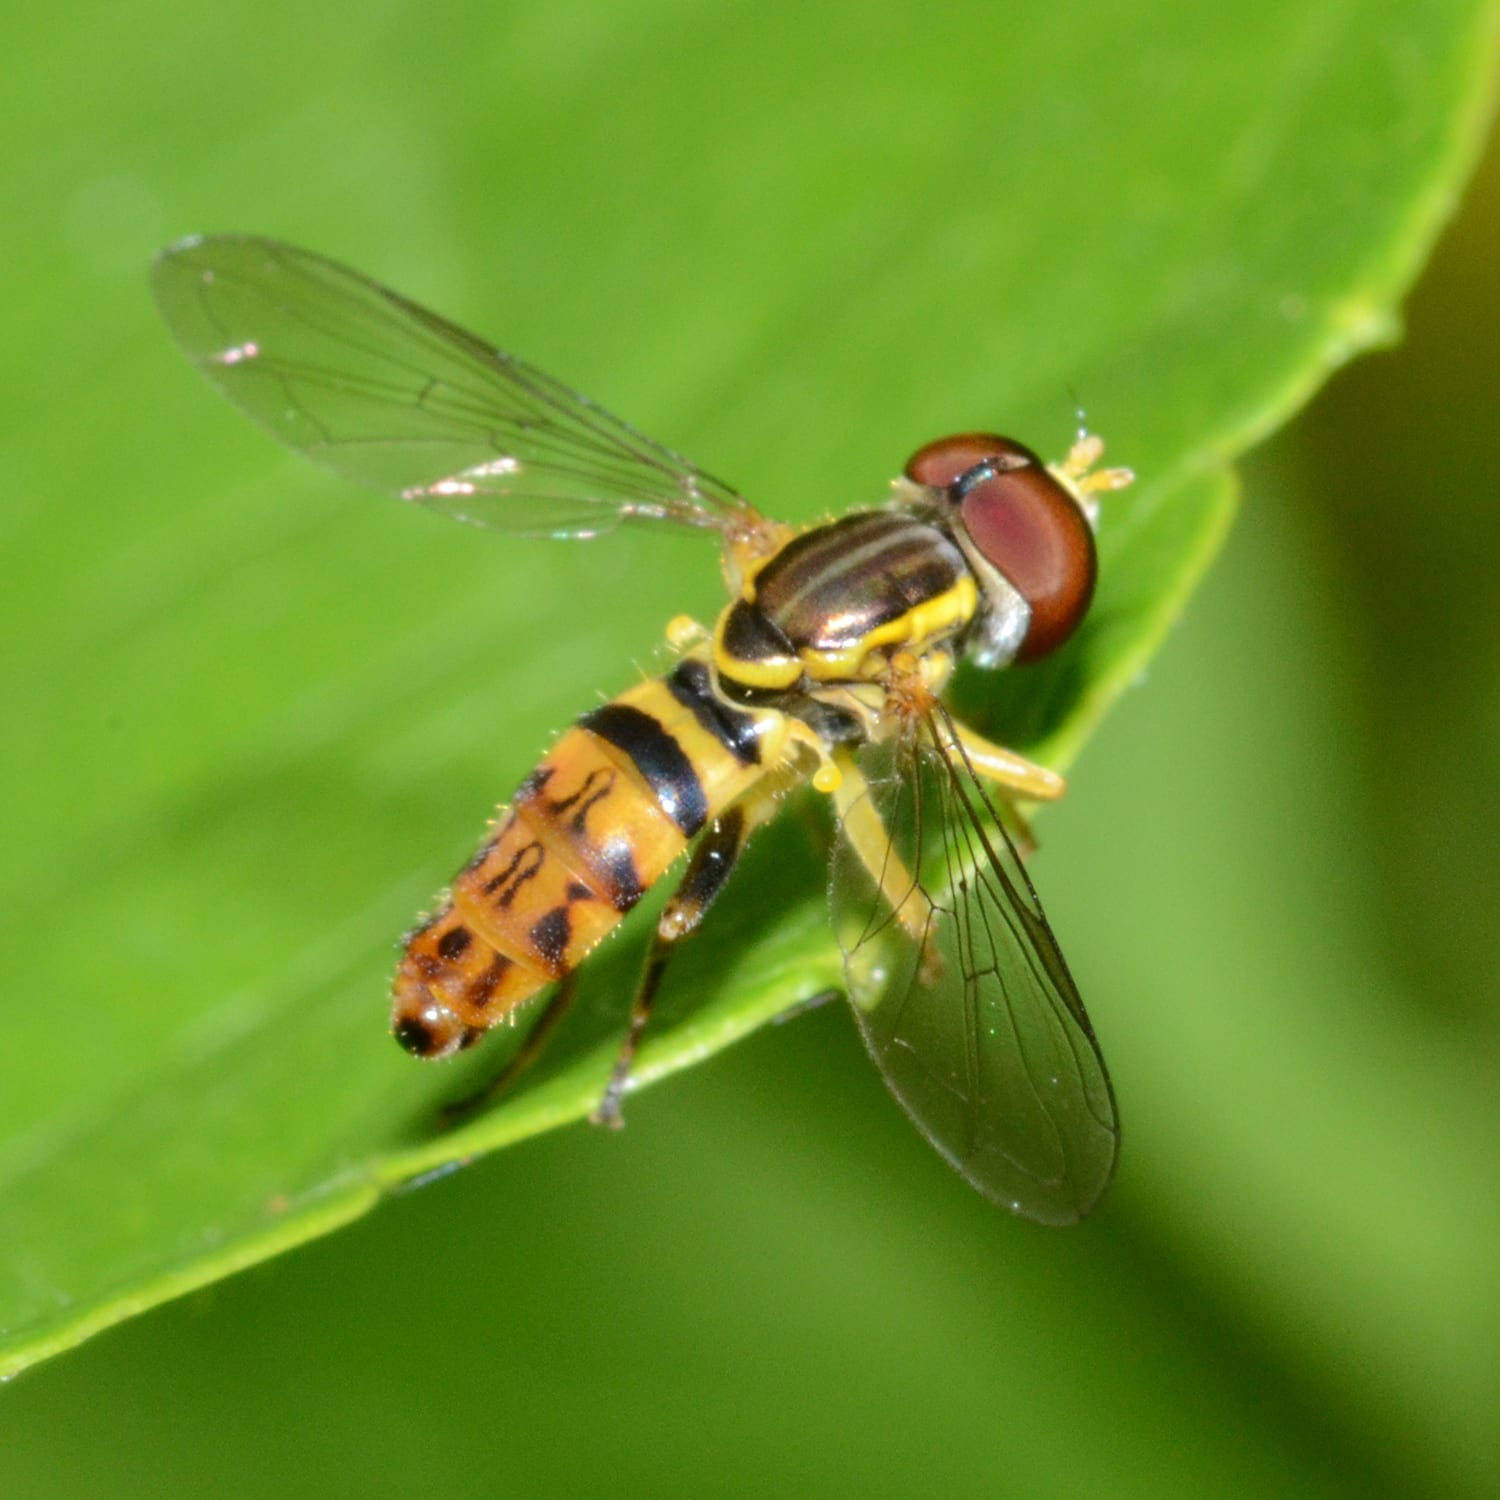 The Backside of a Hover Fly